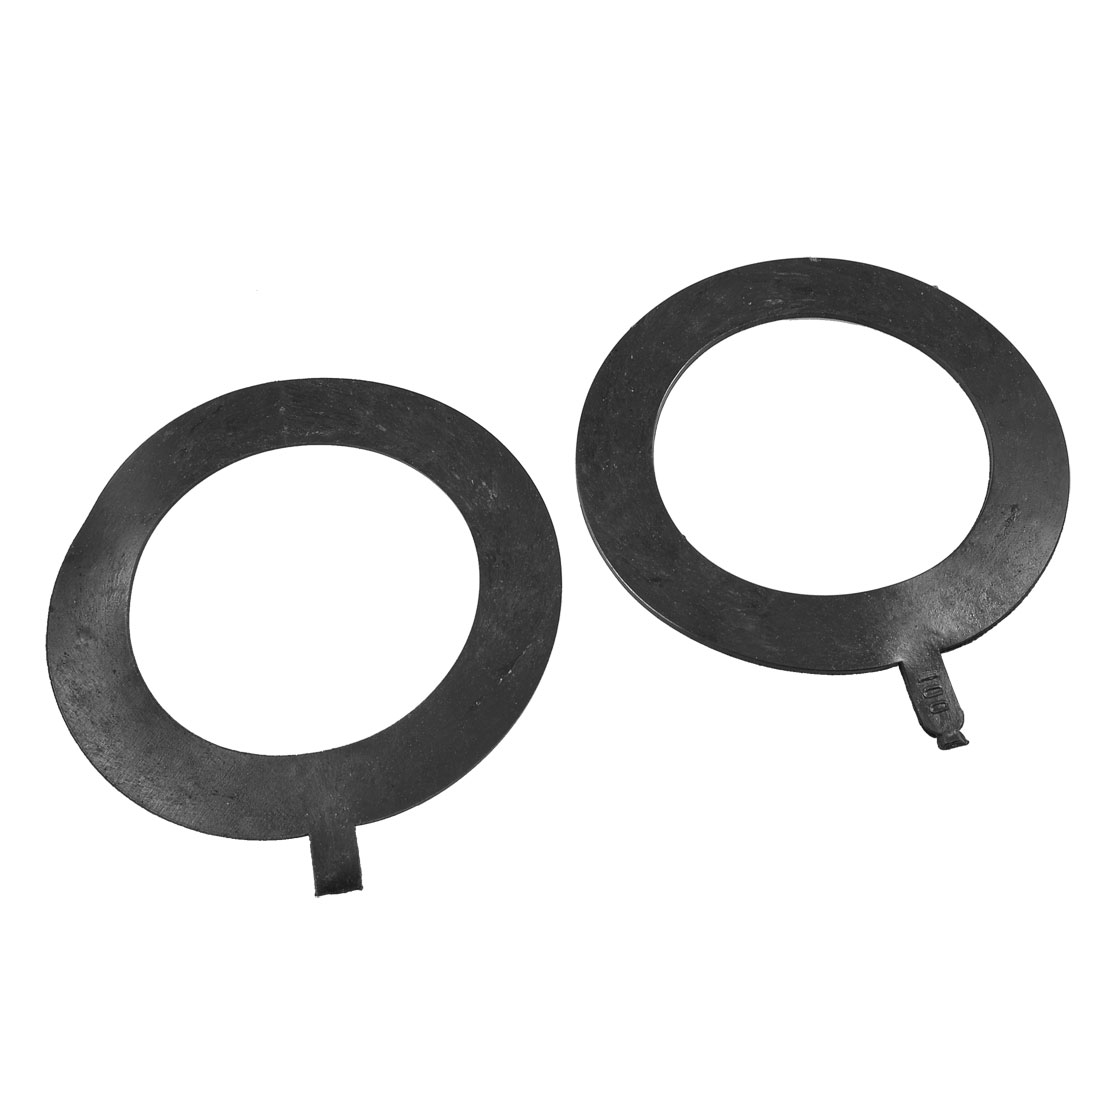 2 Pcs 150mm x 100mm x 2mm Rubber Sealing Washers Waterproof Gaskets